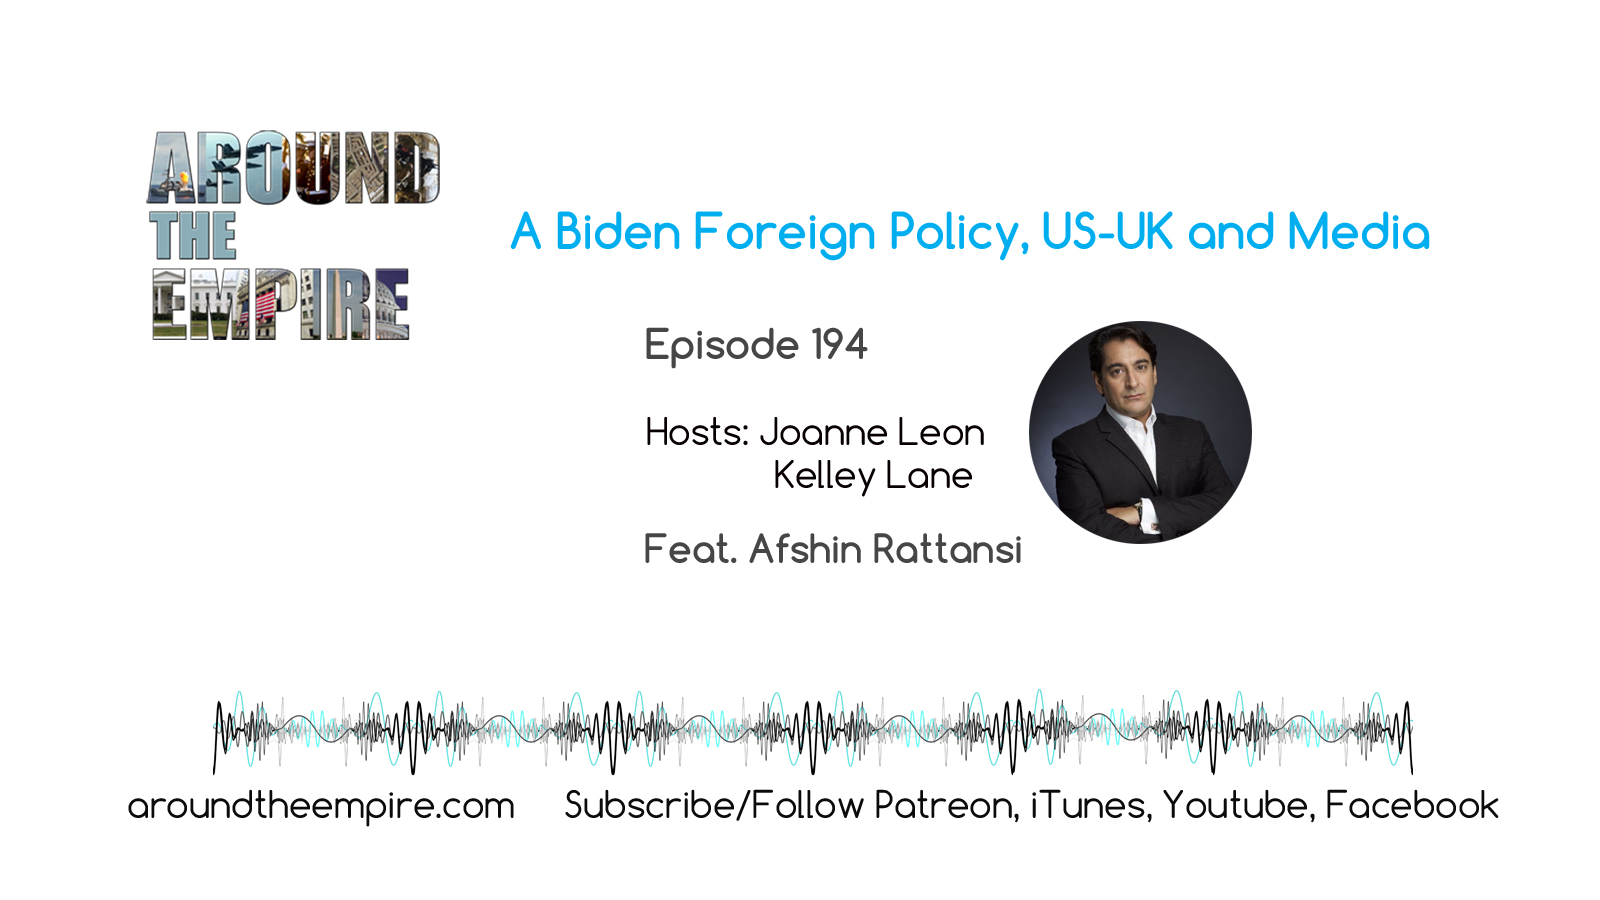 Ep 194 A Biden Foreign Policy, US/UK and Media feat Afshin Rattansi